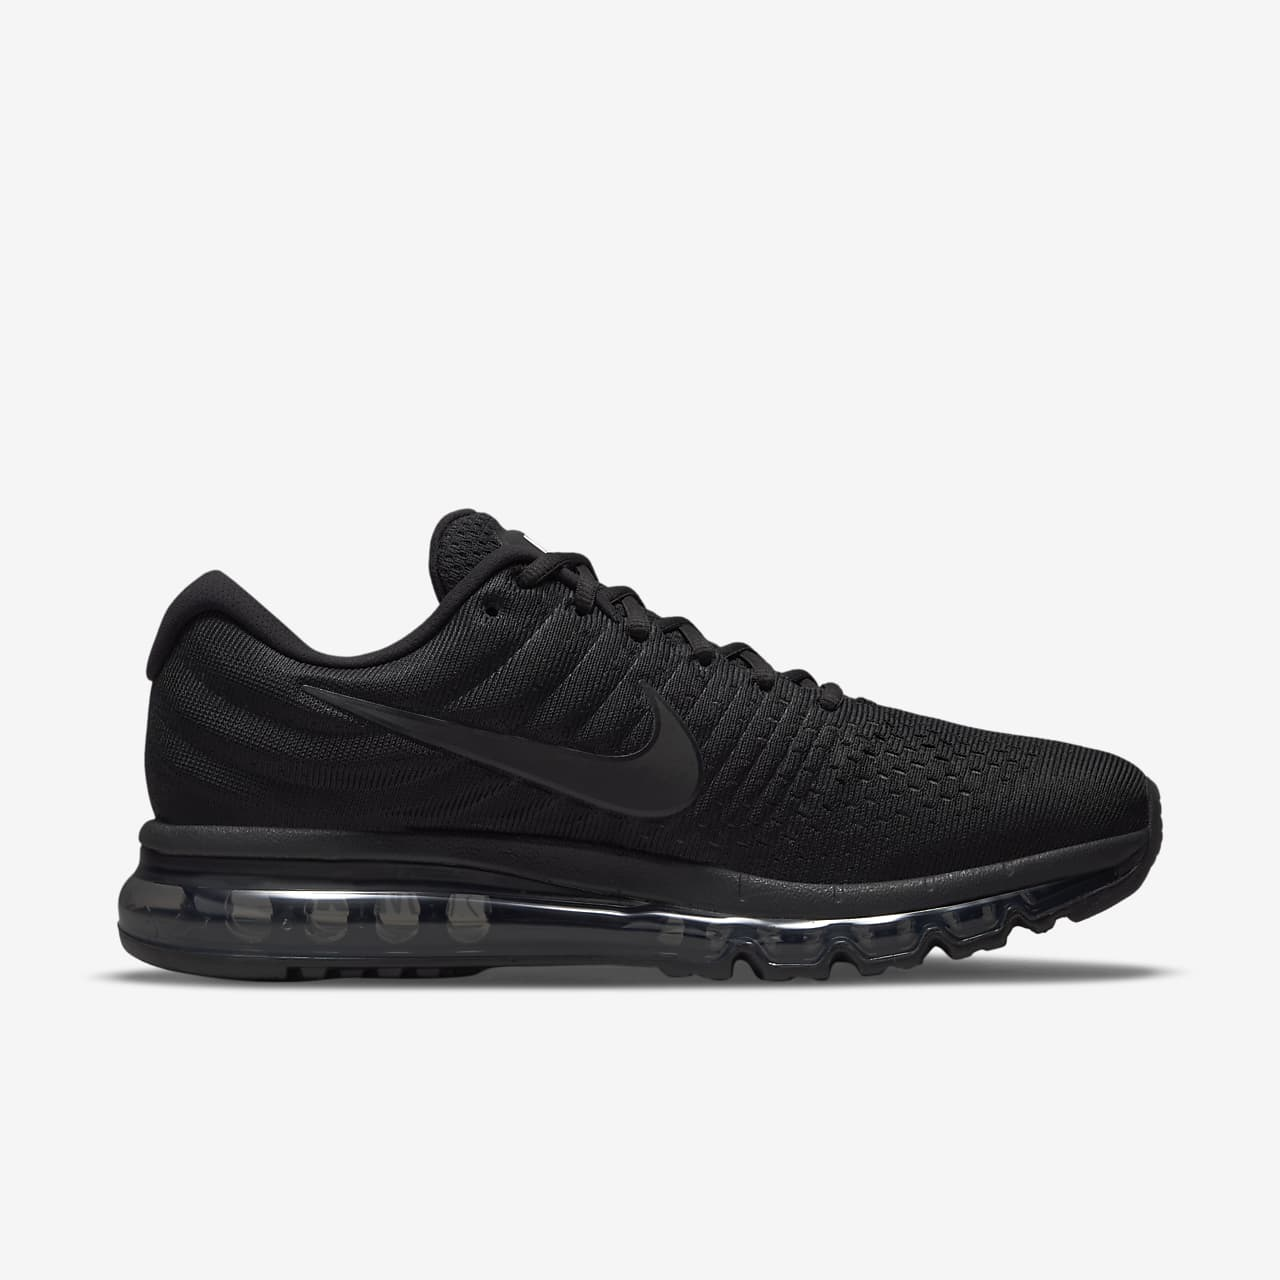 2018 nike air max elite nz